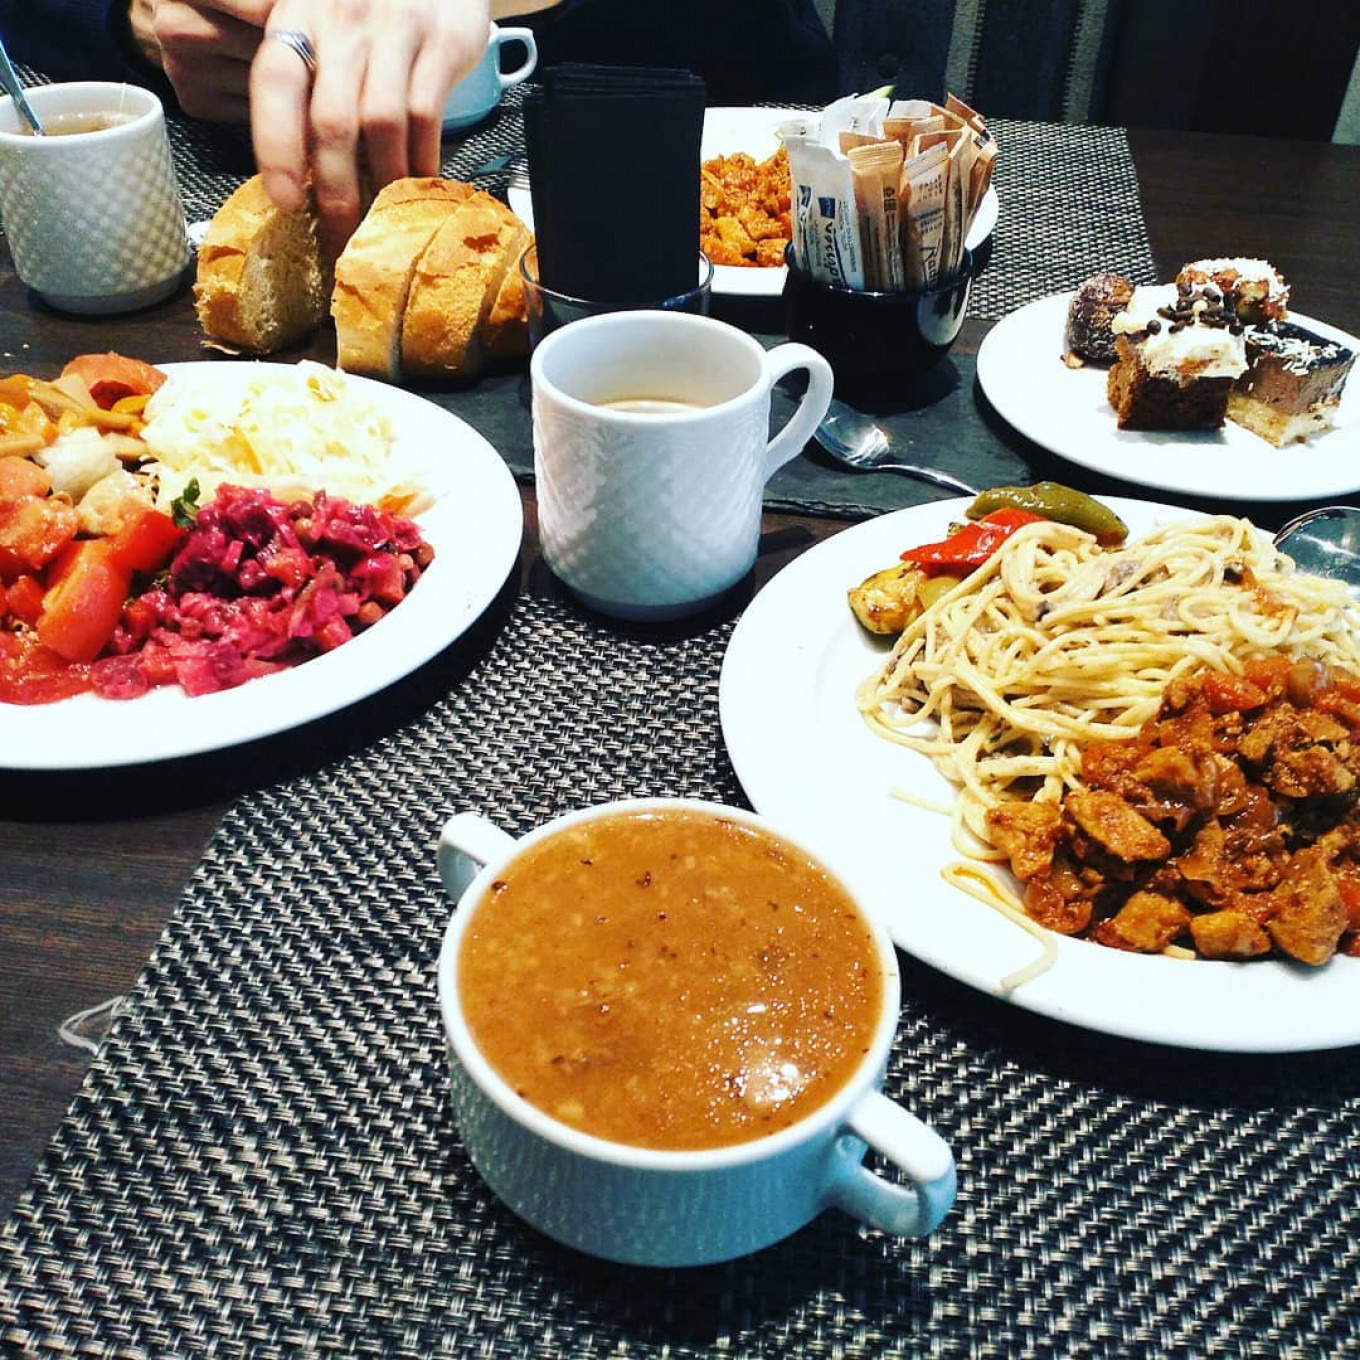 Participants posted social media snaps of their four-star hotels and buffet meals. Instagram / Rezchkik666